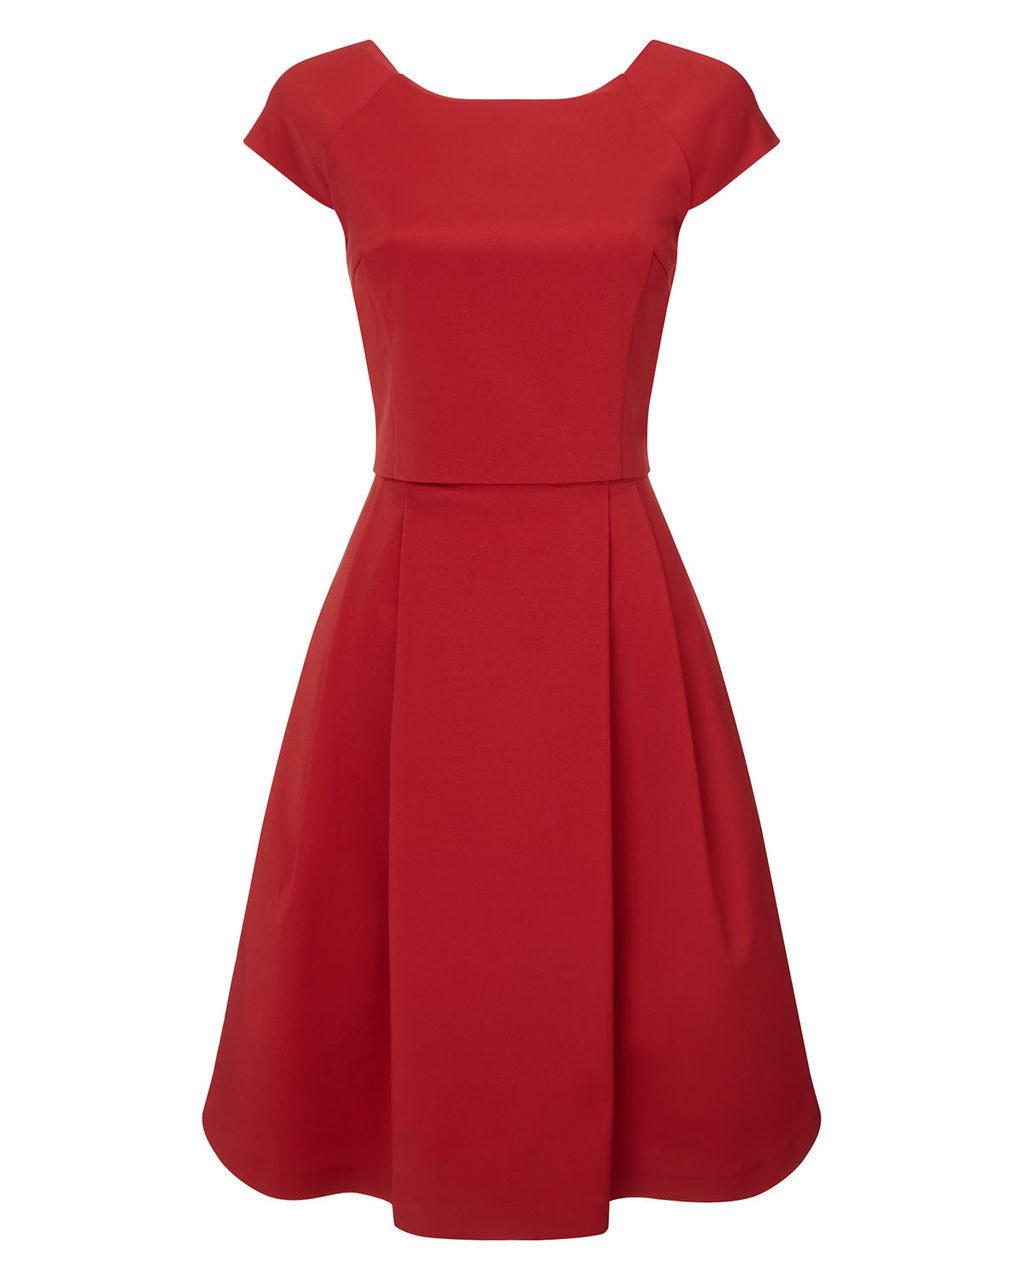 Bernice Dress - neckline: round neck; sleeve style: capped; pattern: plain; style: full skirt; back detail: back revealing; predominant colour: true red; occasions: evening; length: on the knee; fit: fitted at waist & bust; fibres: viscose/rayon - stretch; hip detail: adds bulk at the hips; sleeve length: short sleeve; pattern type: fabric; texture group: other - light to midweight; season: a/w 2015; wardrobe: event